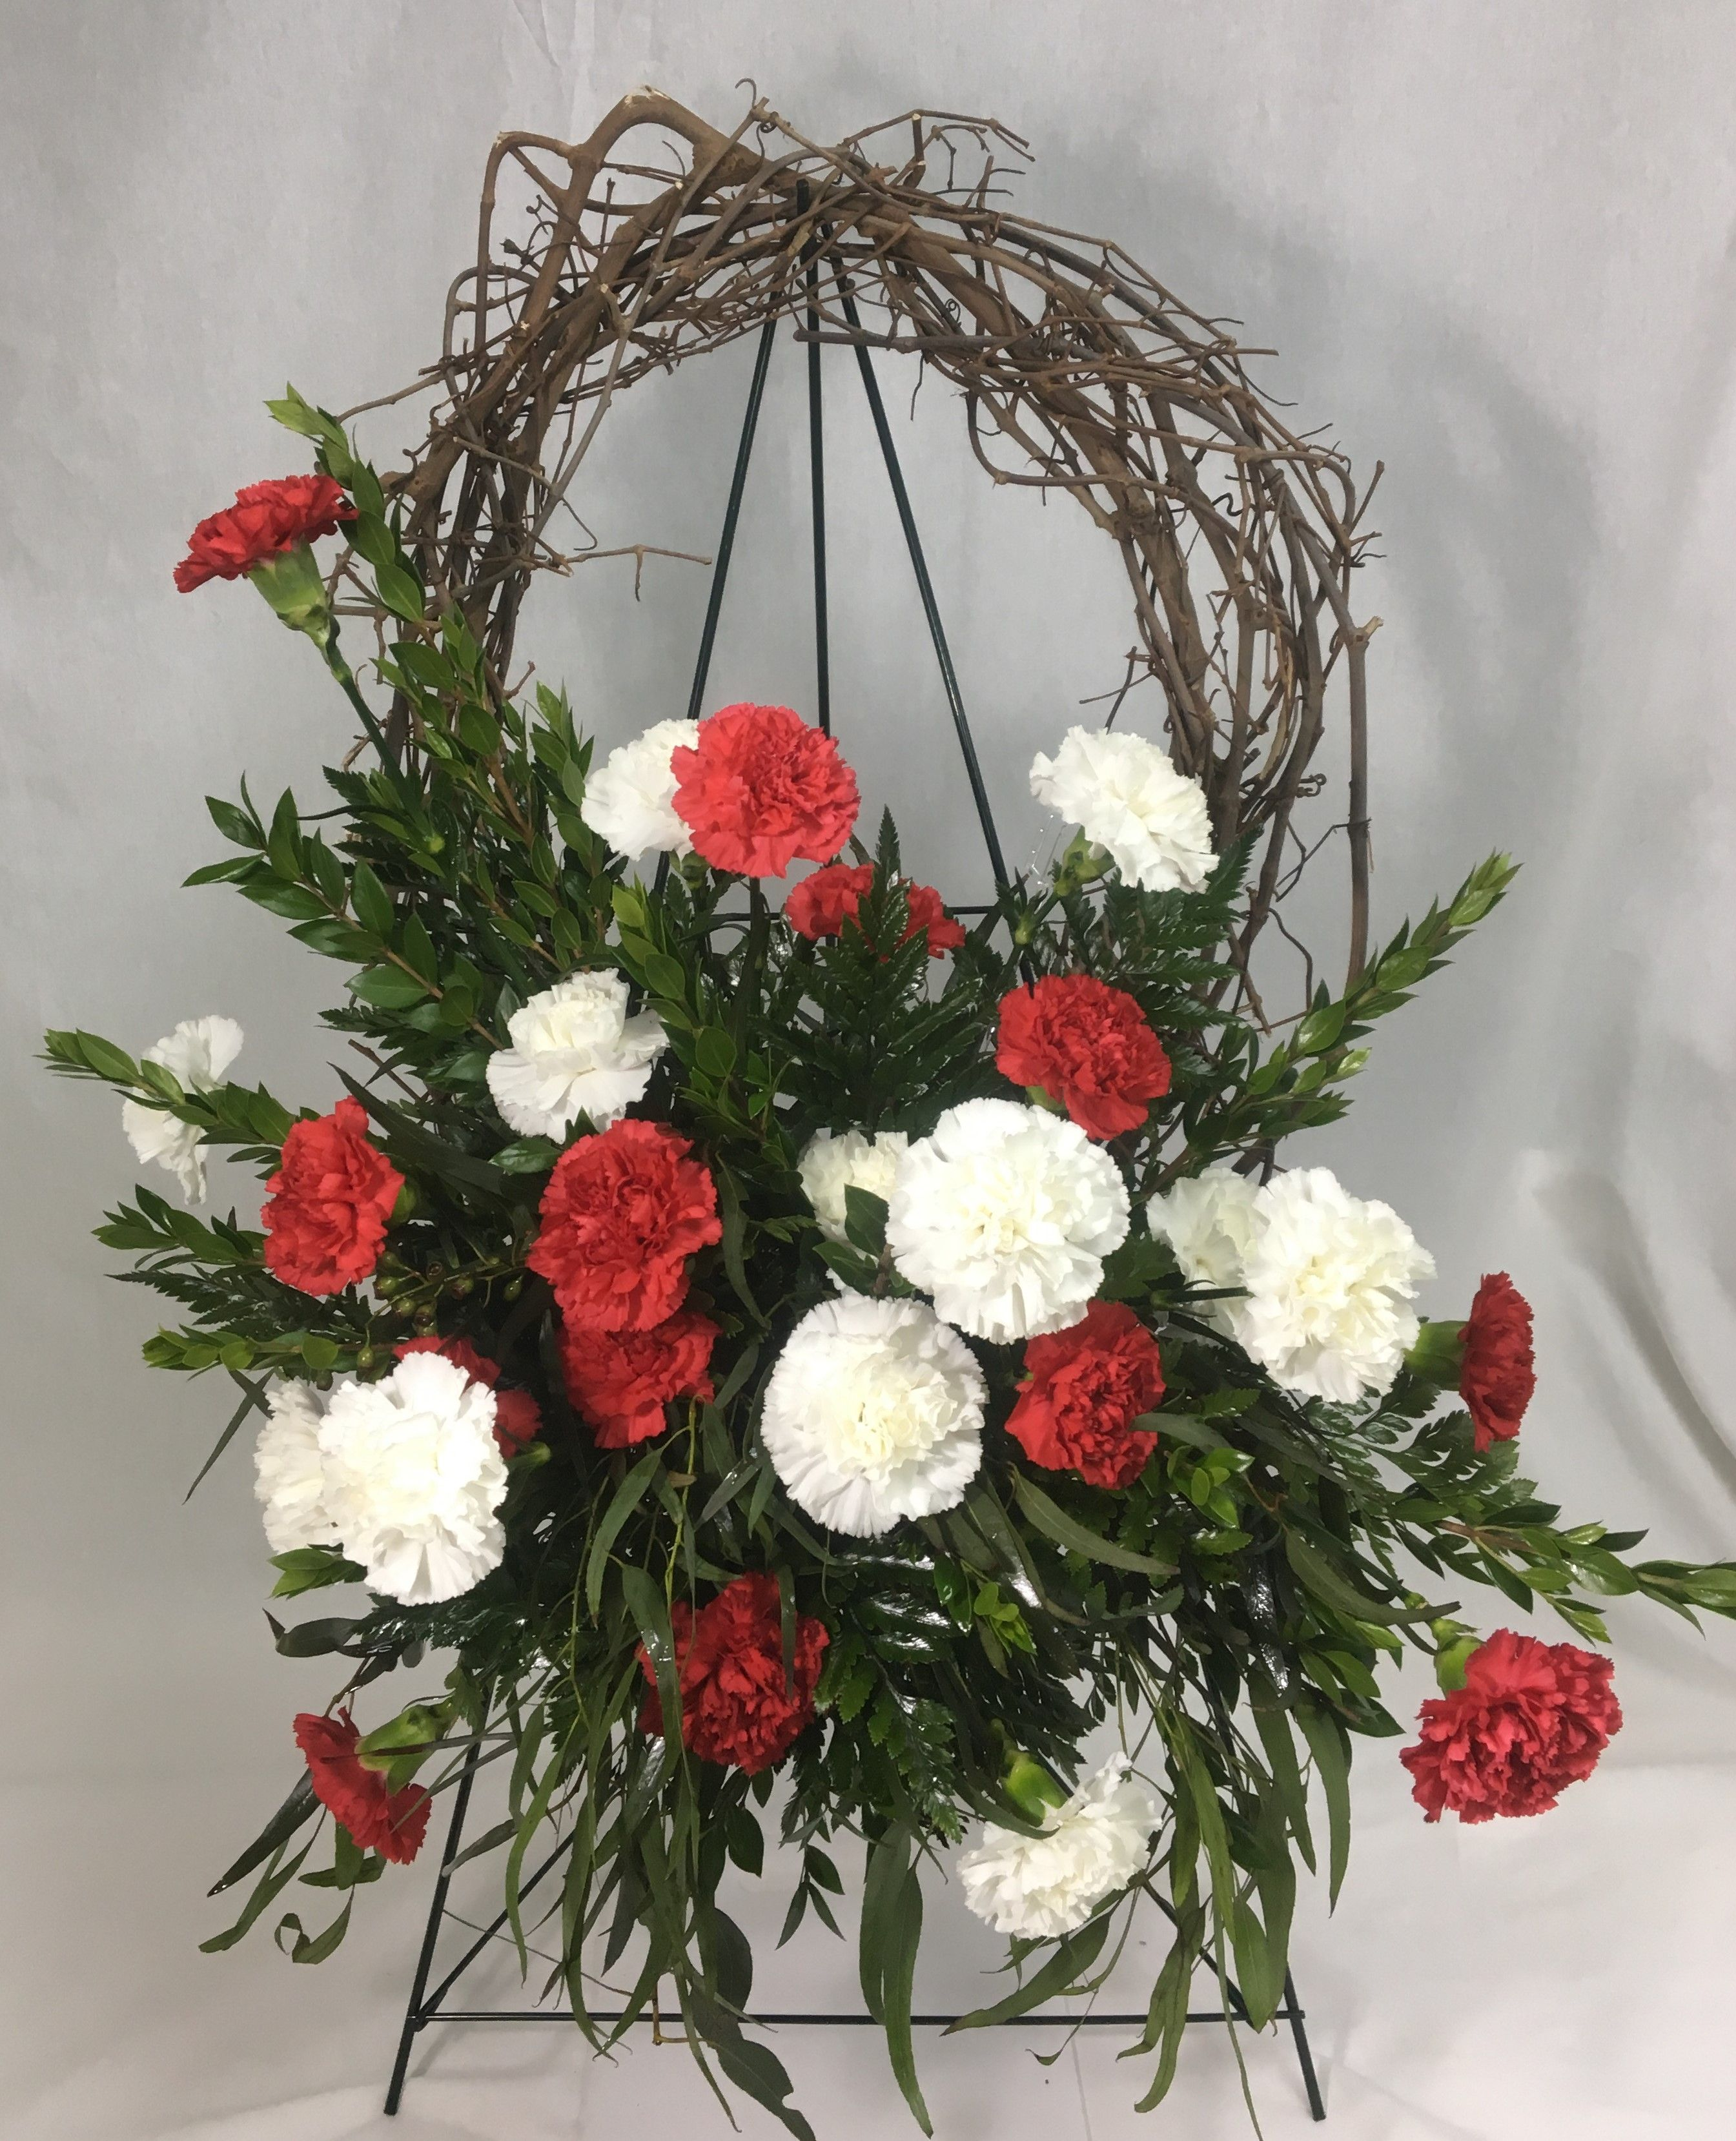 Red and white standard carnations myrtle willow eucalyptus and funeral flowers red and white standard carnations myrtle willow eucalyptus and leather fern attached to izmirmasajfo